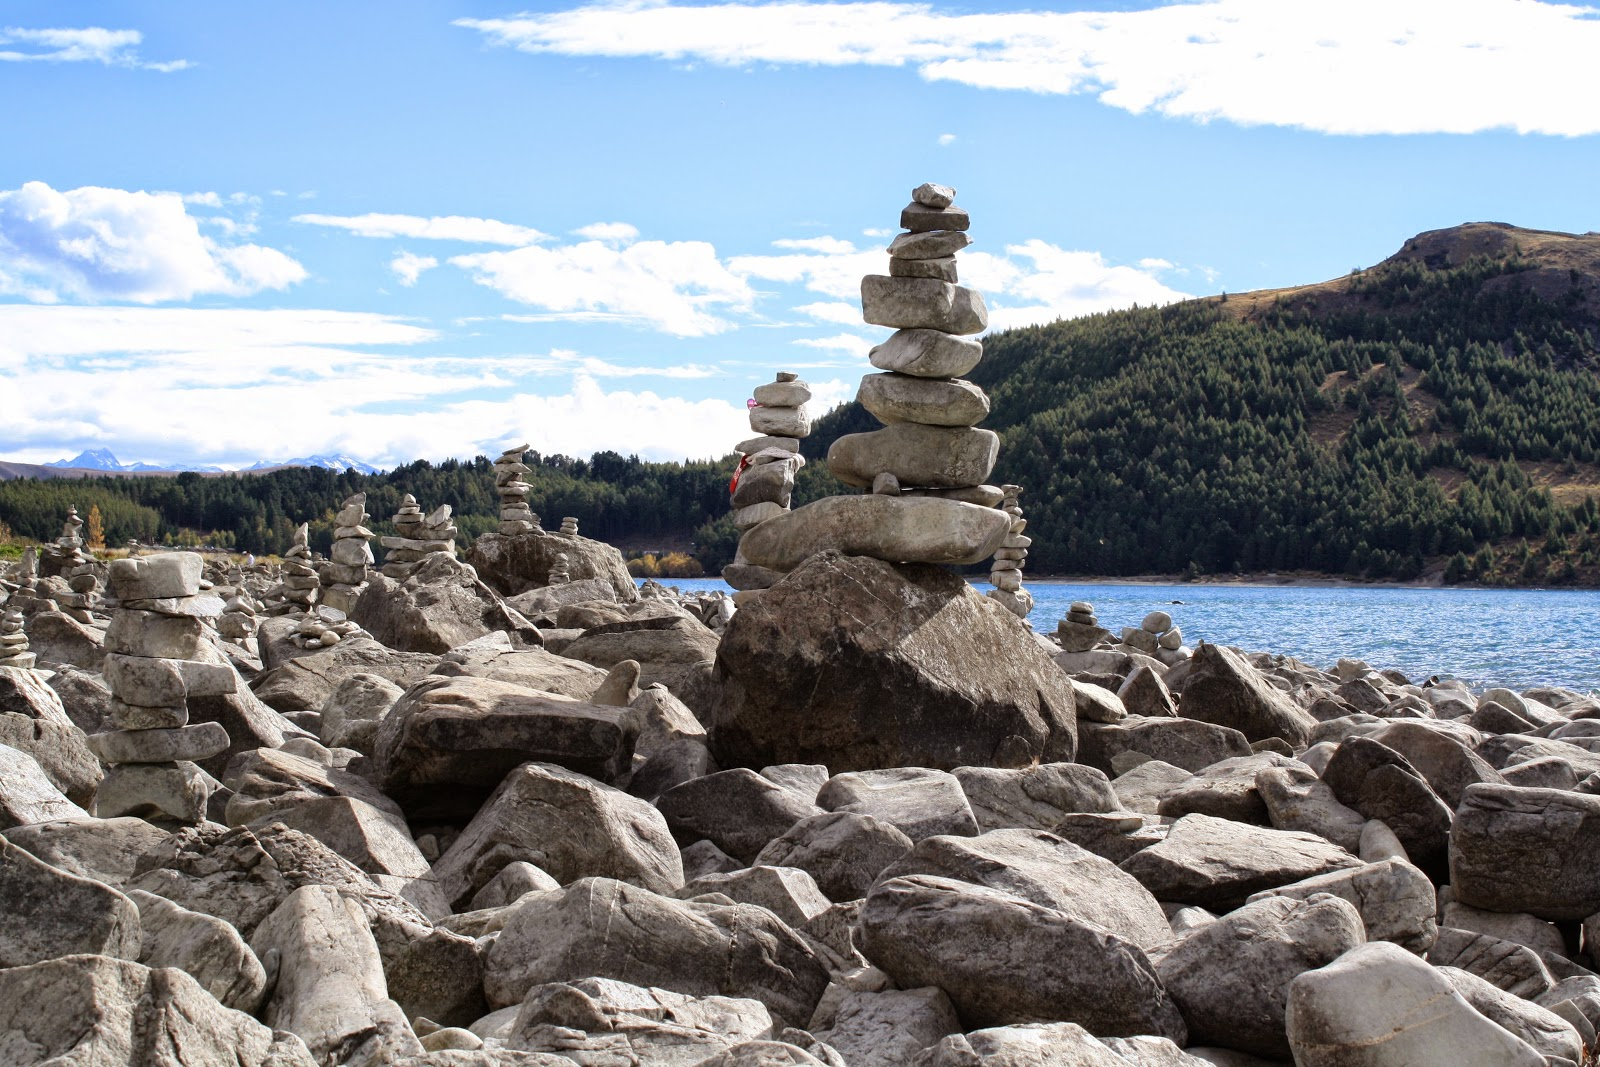 Stacked stones by Lake Tekapo, in the South Island of New Zealand.